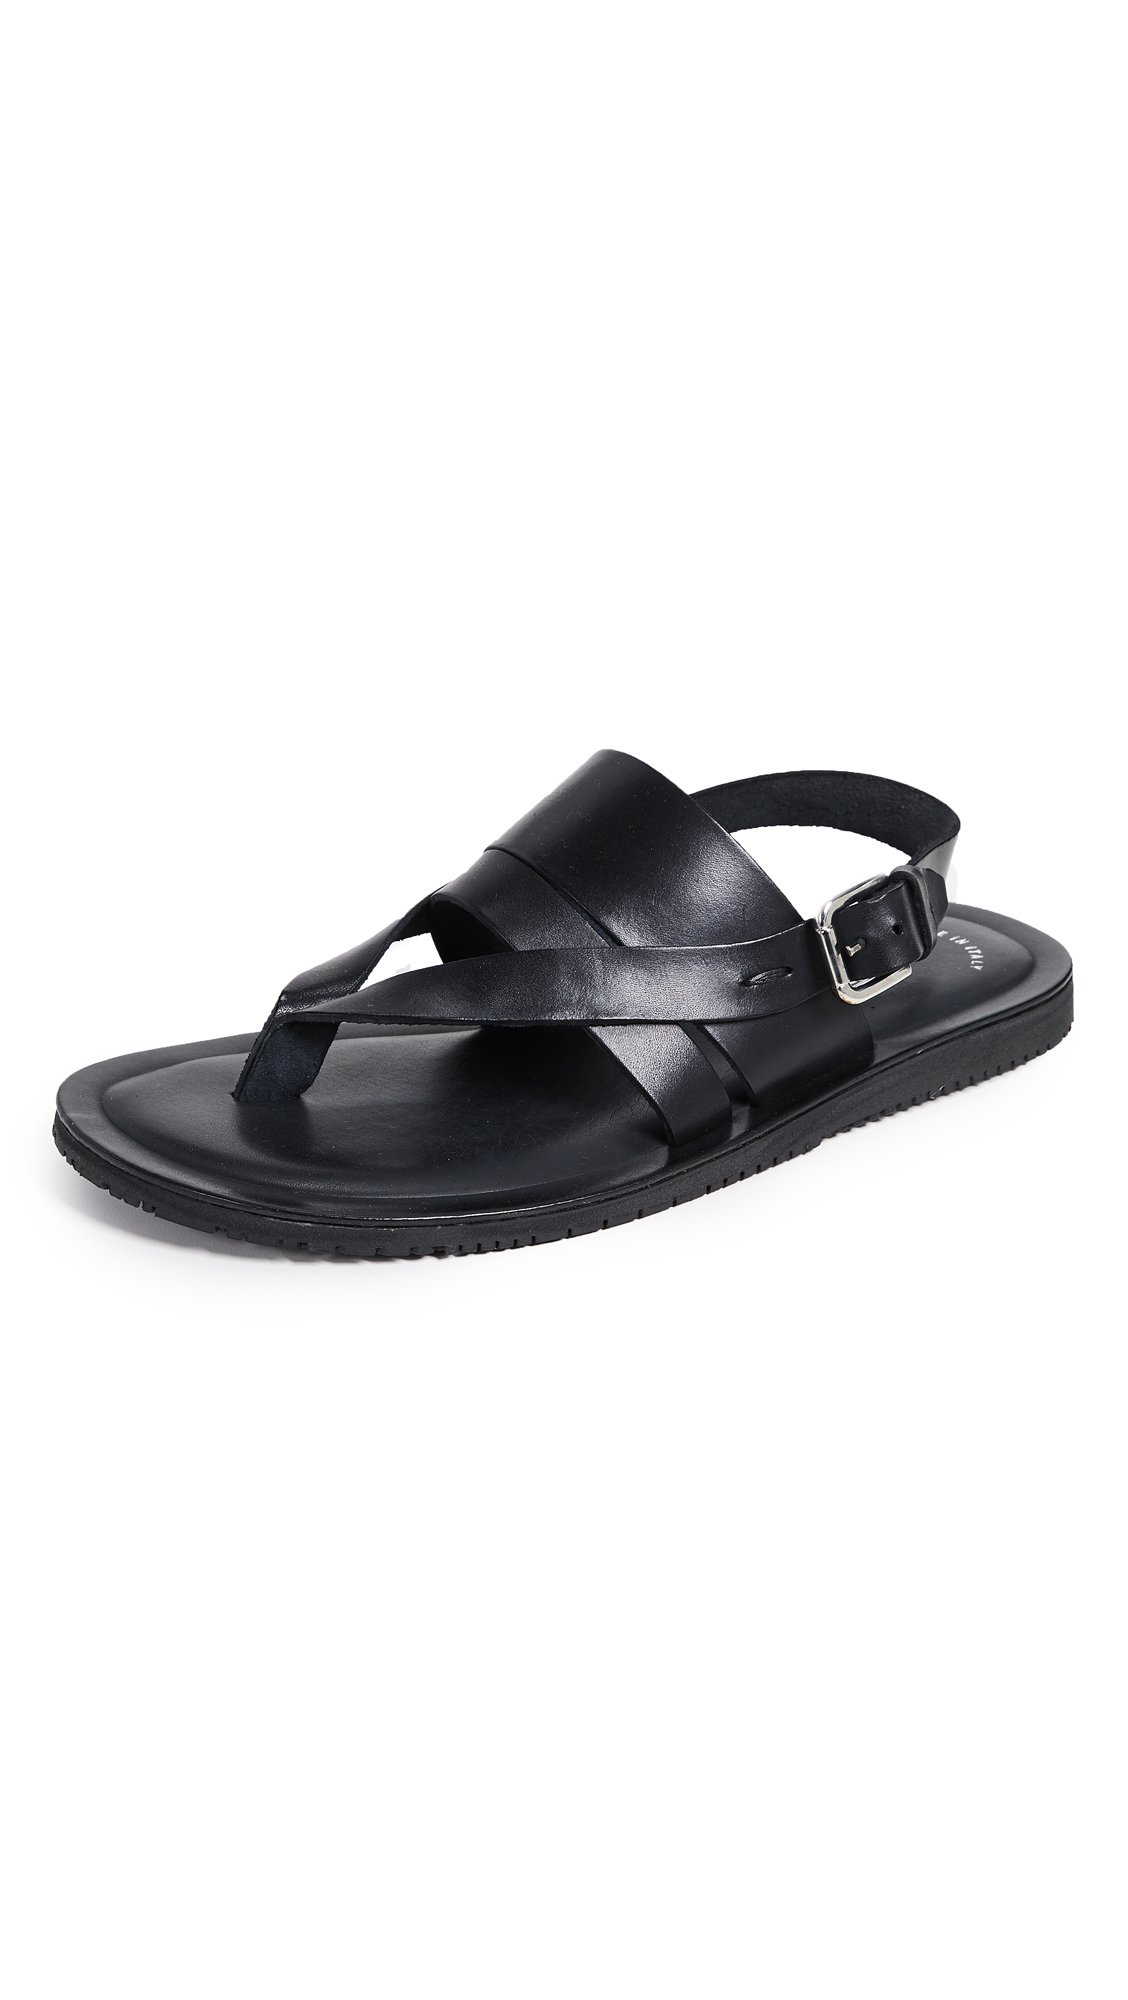 Kenneth Cole New York Men's Reel-ist Flat Sandal, Black, 8 M US